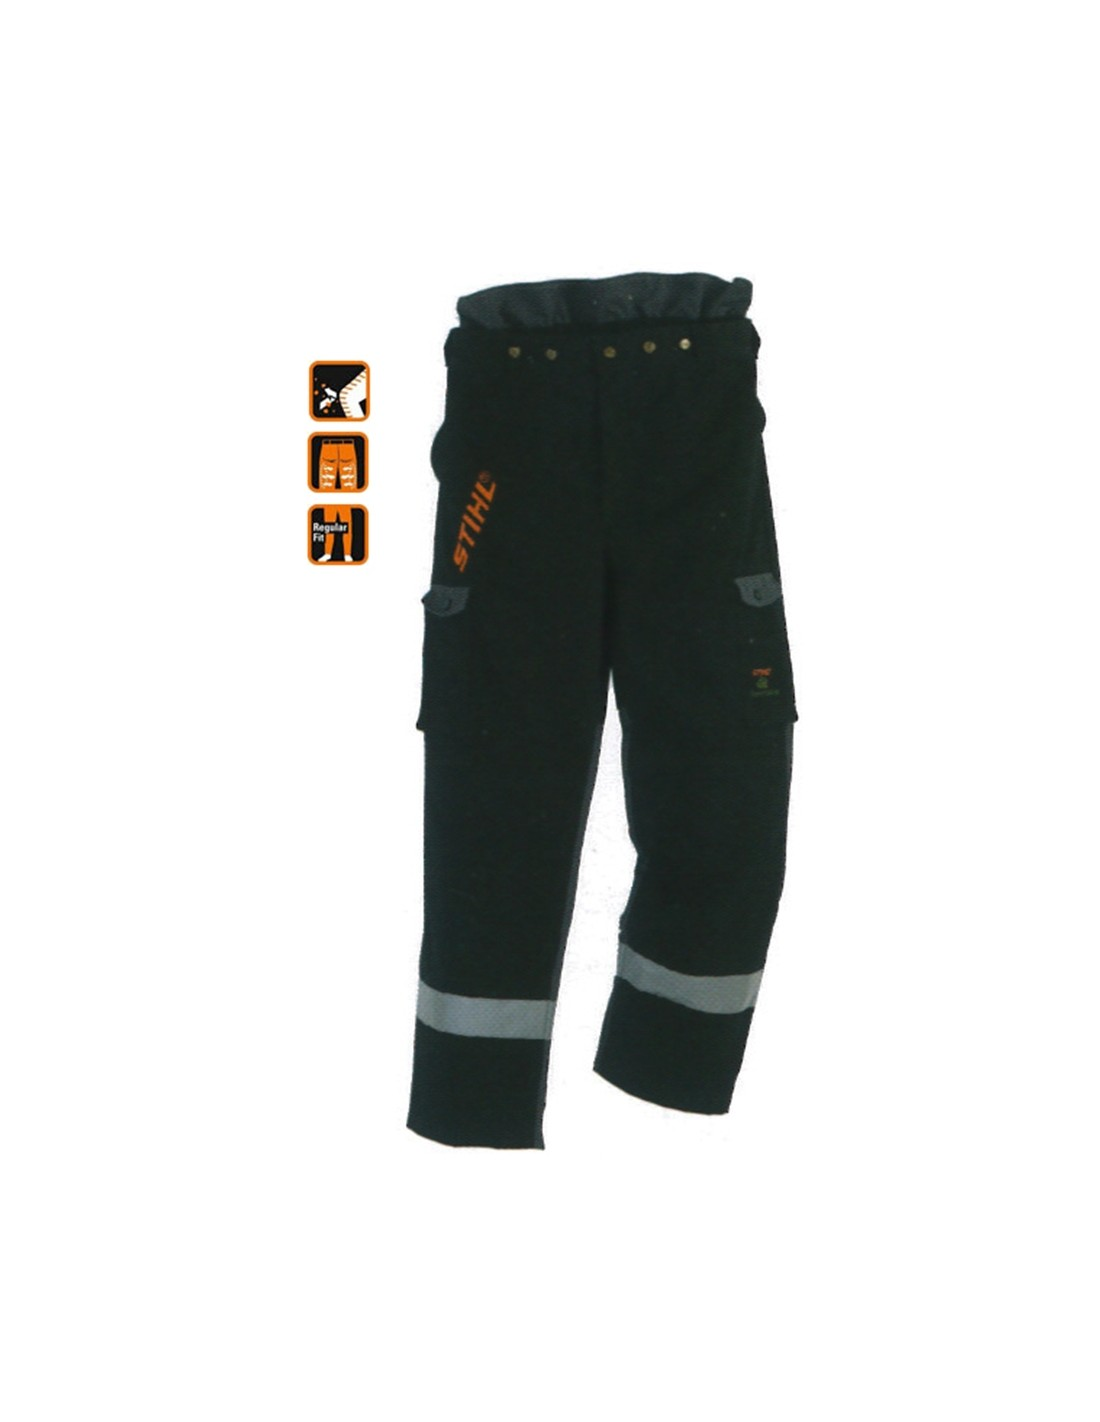 pantalon de d broussaillage stihl ustensiles de cuisine. Black Bedroom Furniture Sets. Home Design Ideas